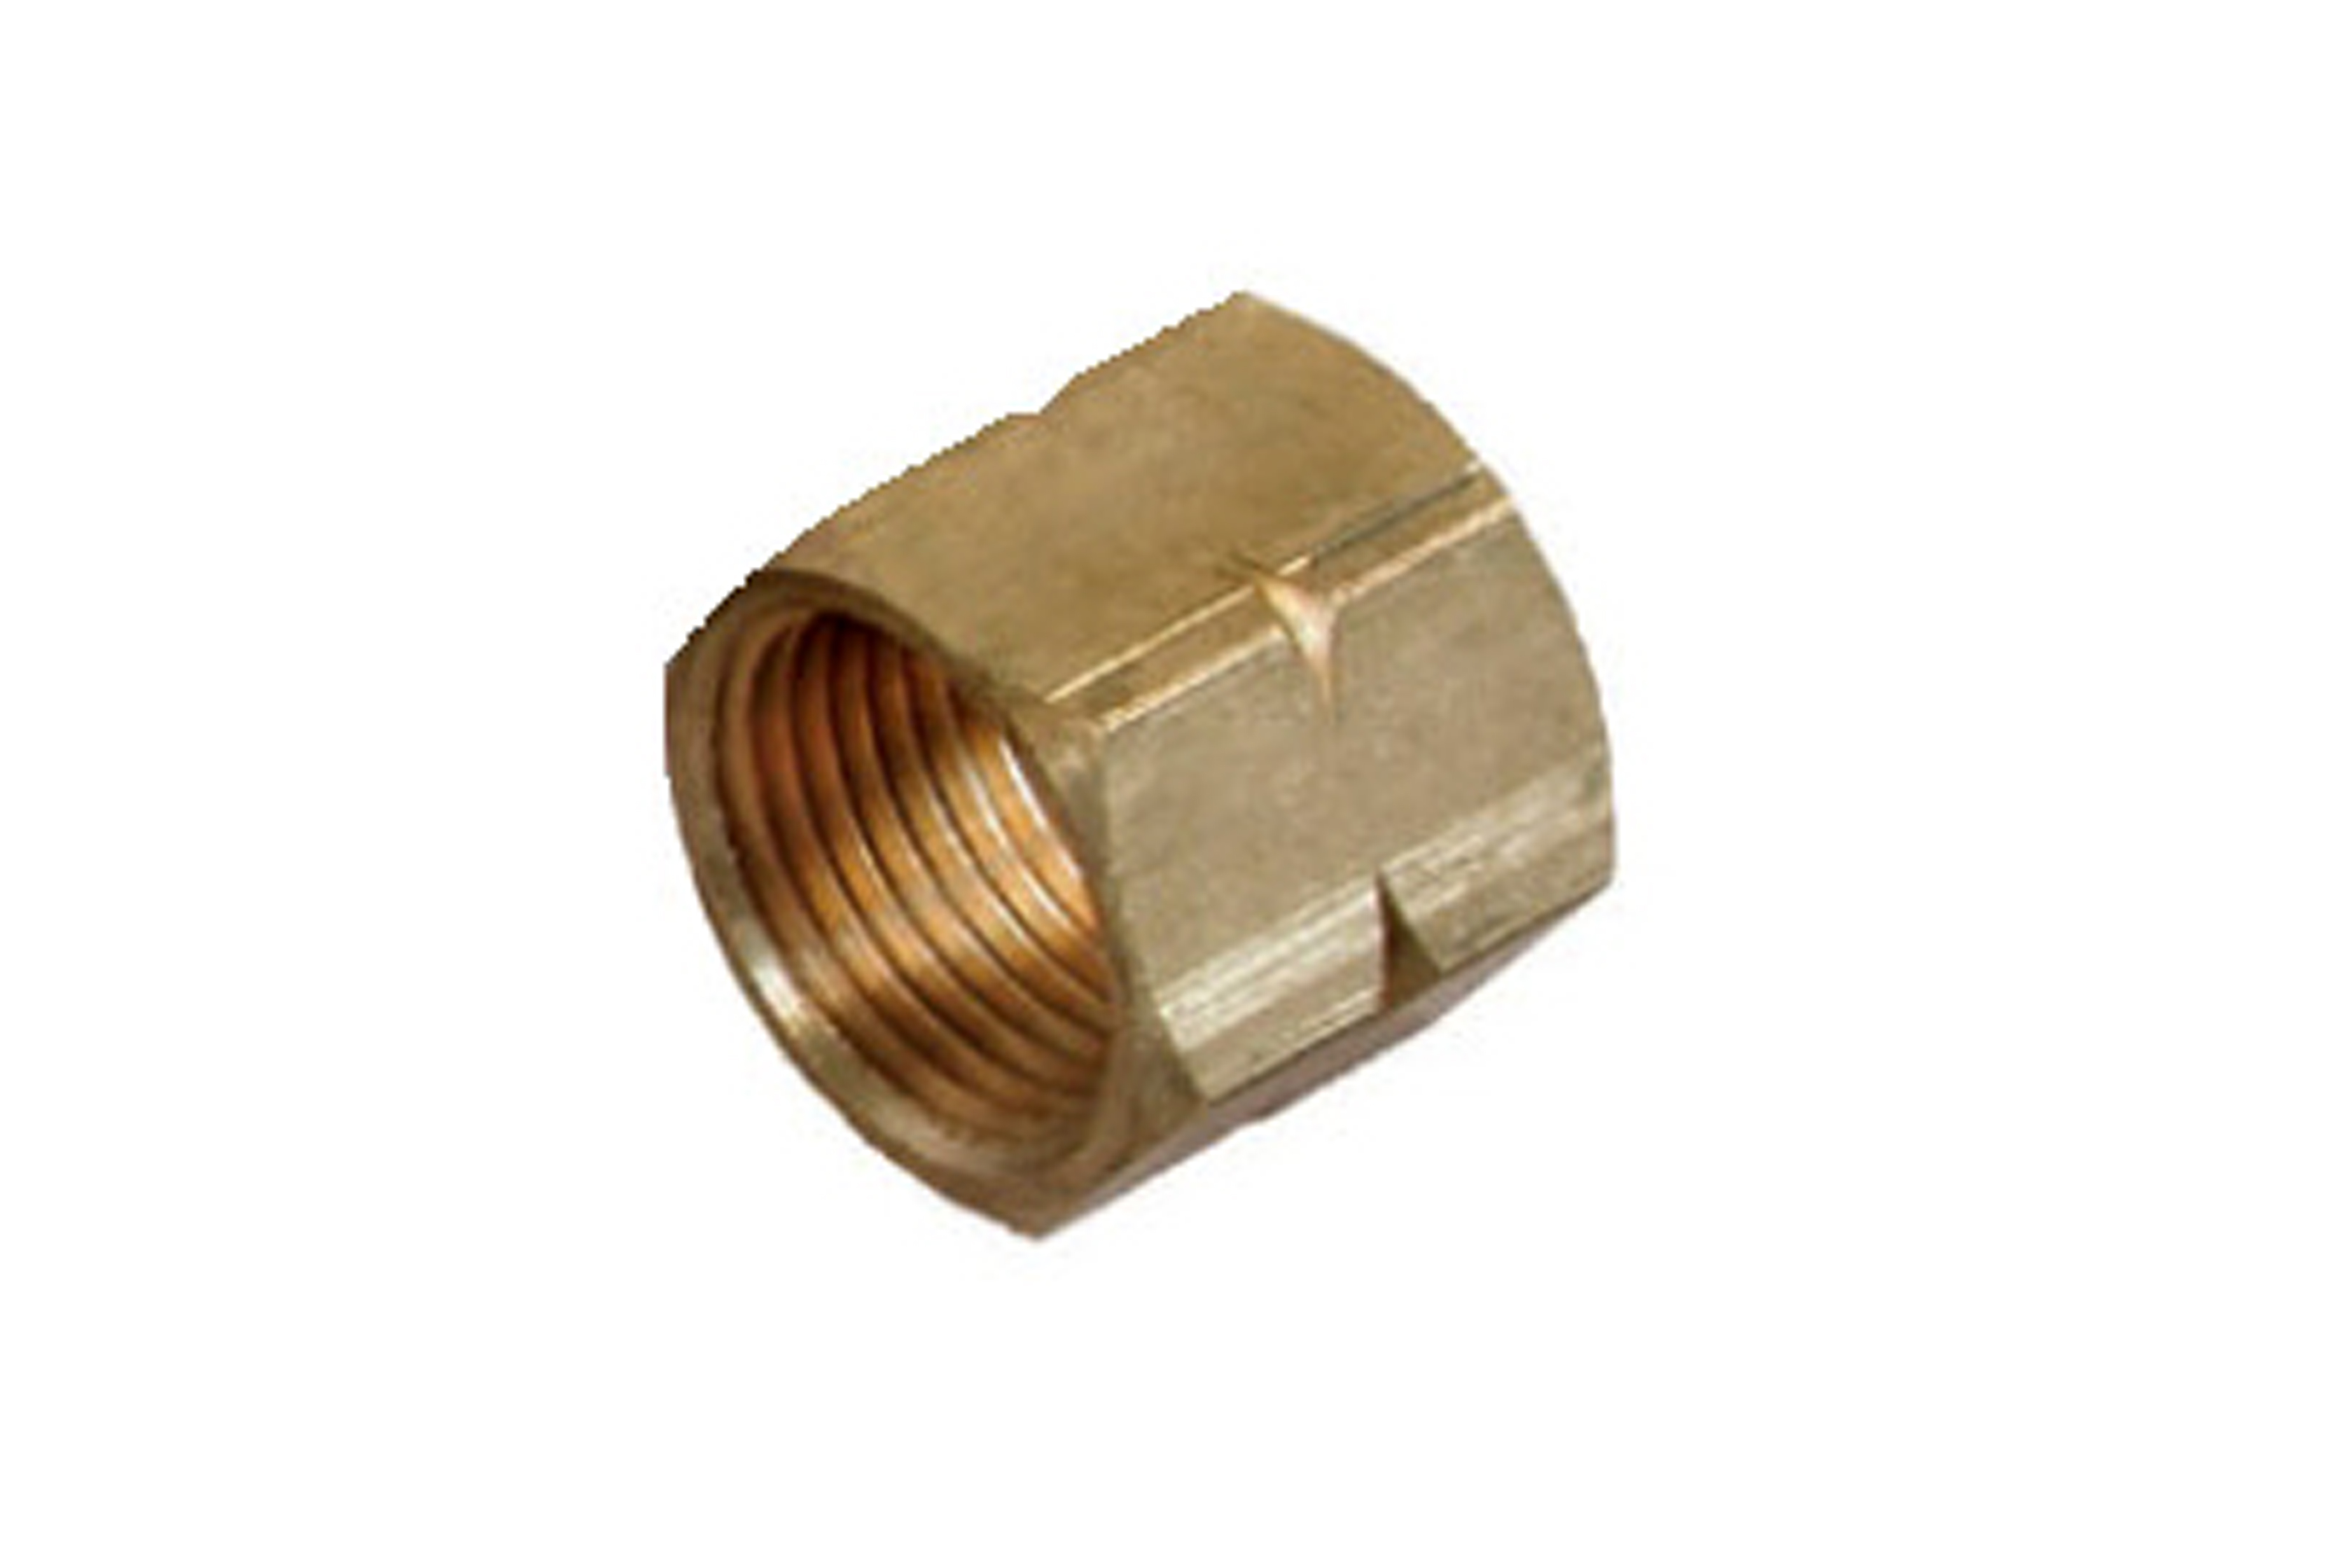 CONNECTING NUTS MADE OF BRASS DIN EN 560 page image